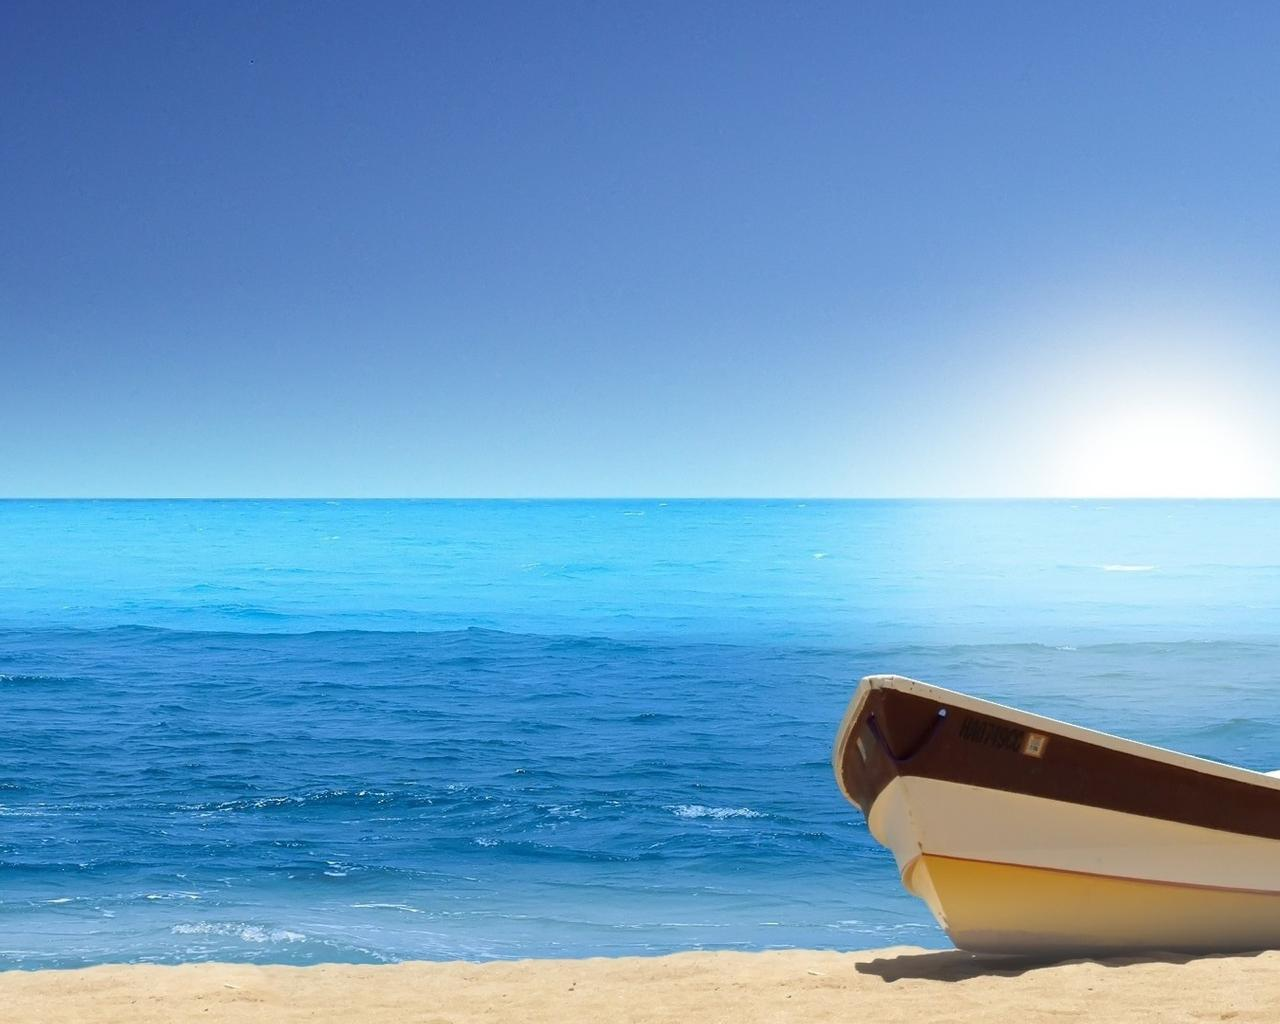 Relaxing Time At The Seaside Summer Holiday Wallpaper